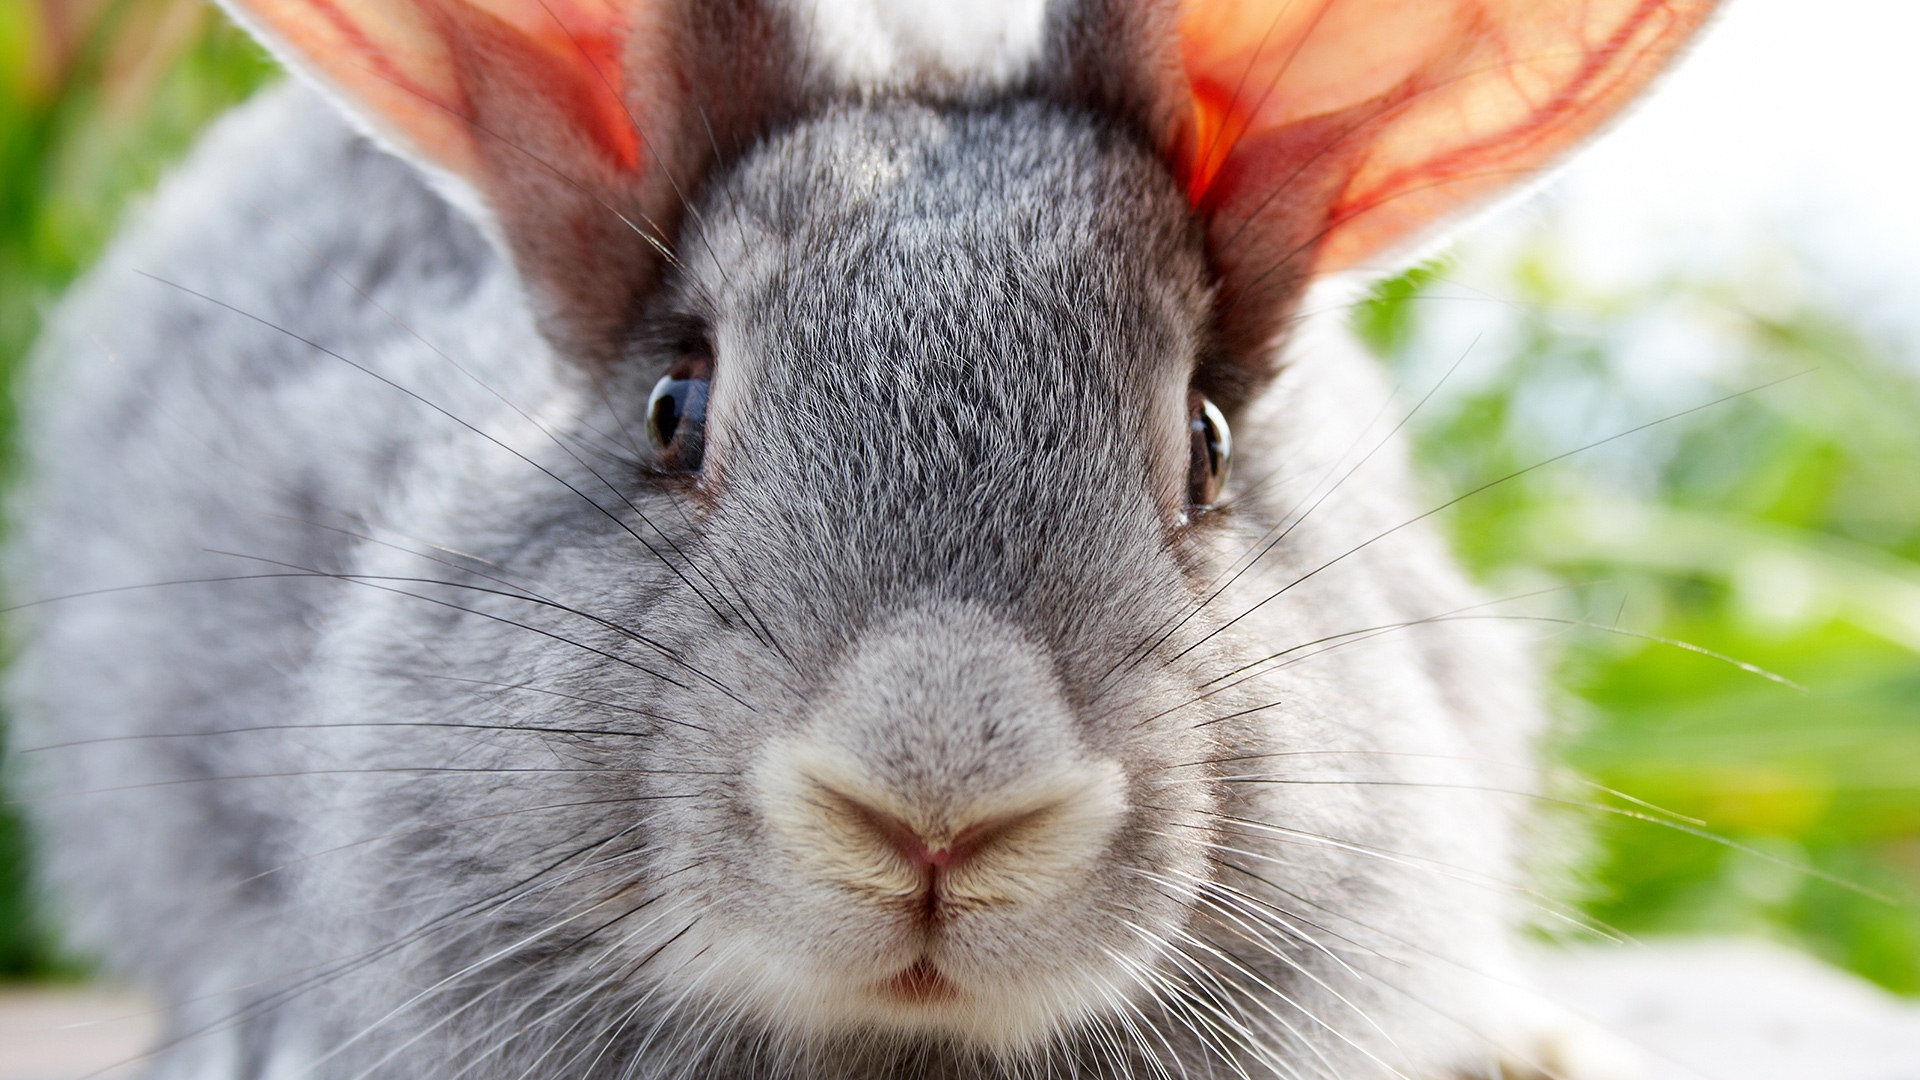 28191 download wallpaper Animals, Rabbits screensavers and pictures for free